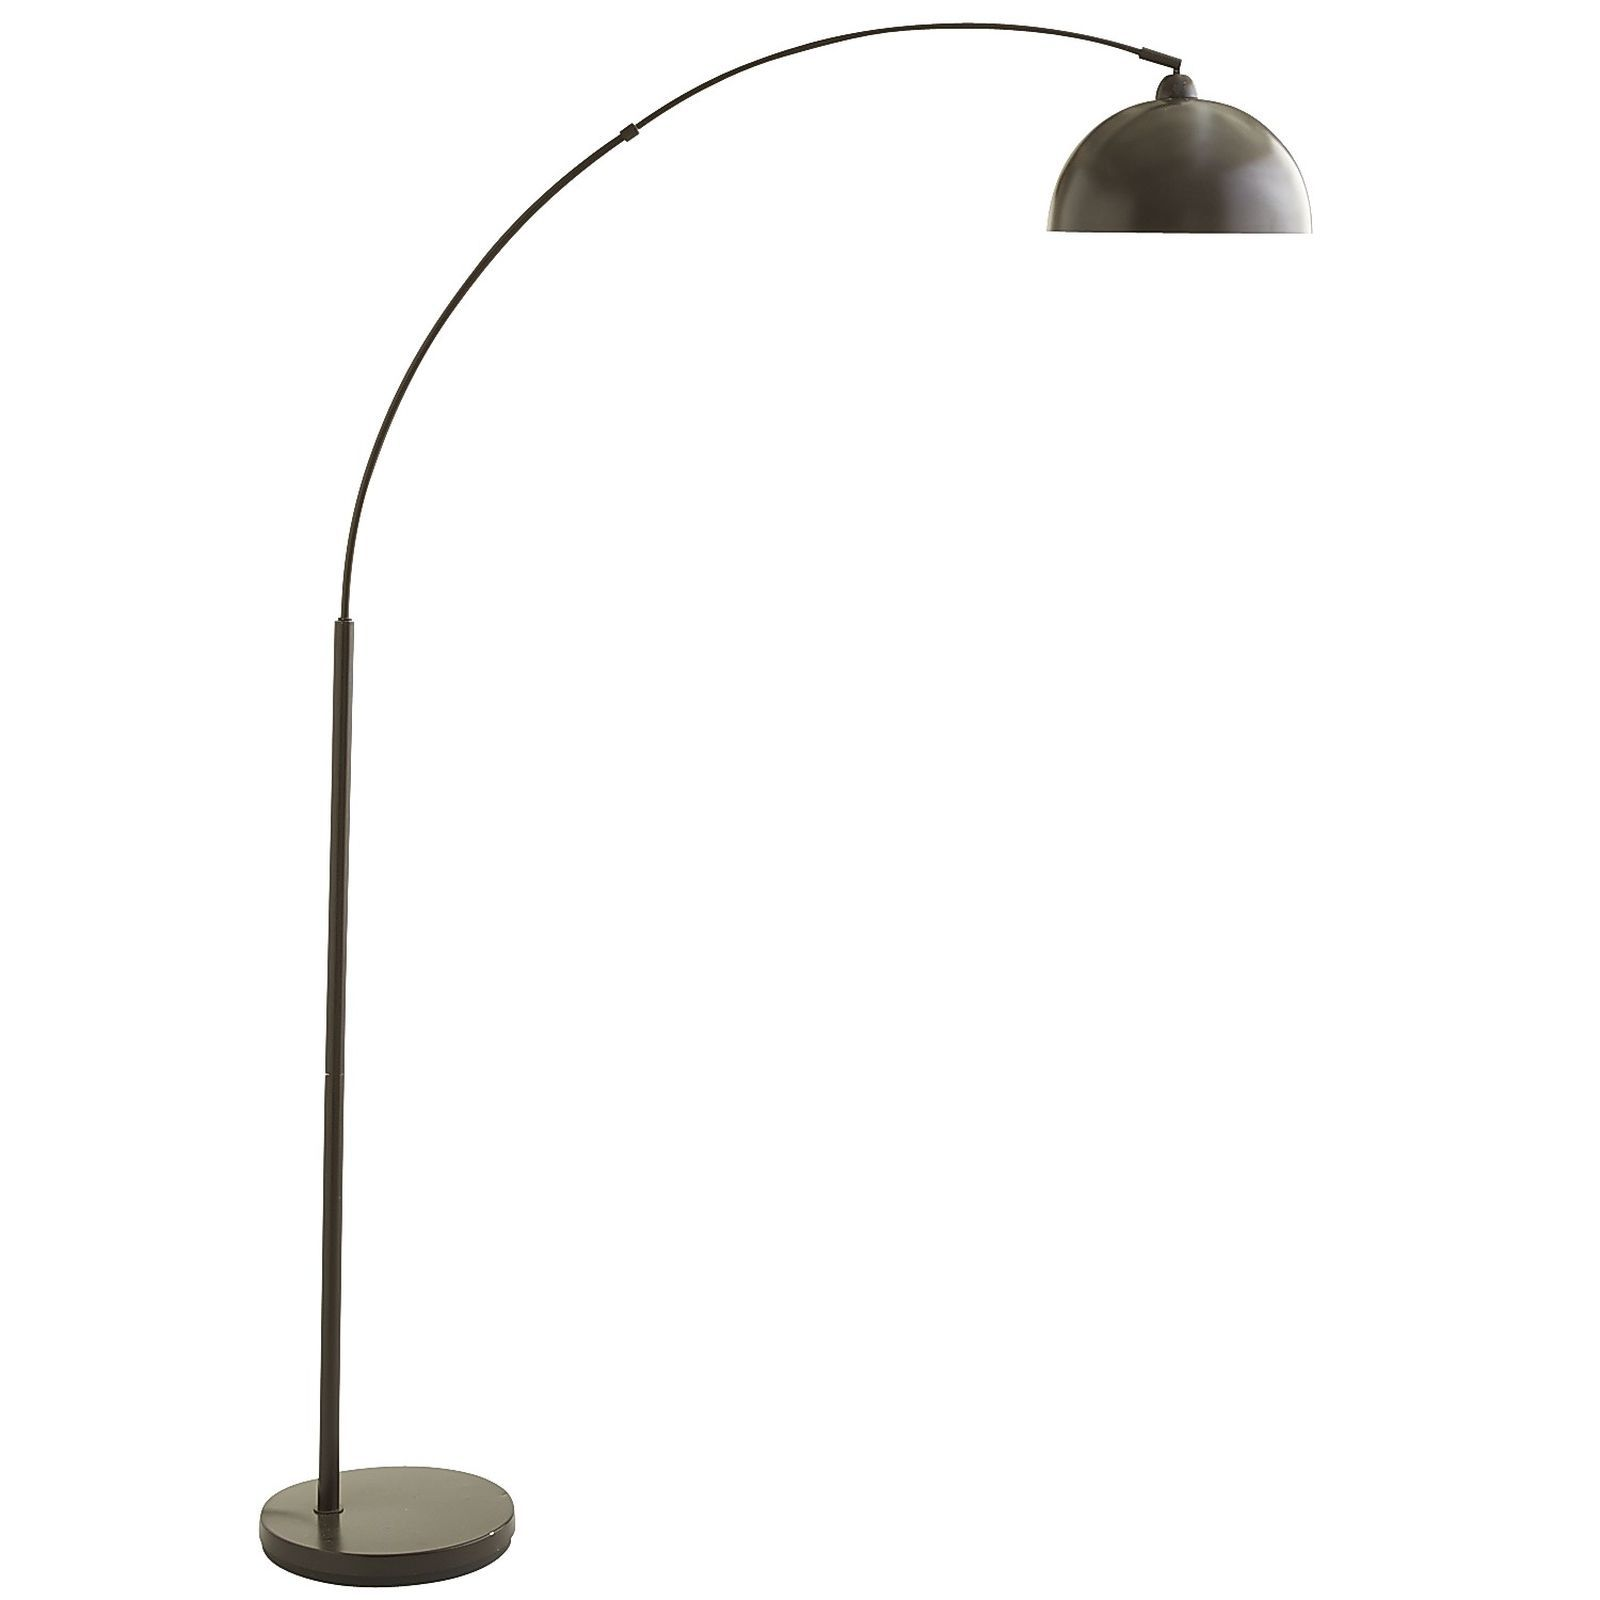 floor lamp prod ore arms black qlt wid hei spin arch p